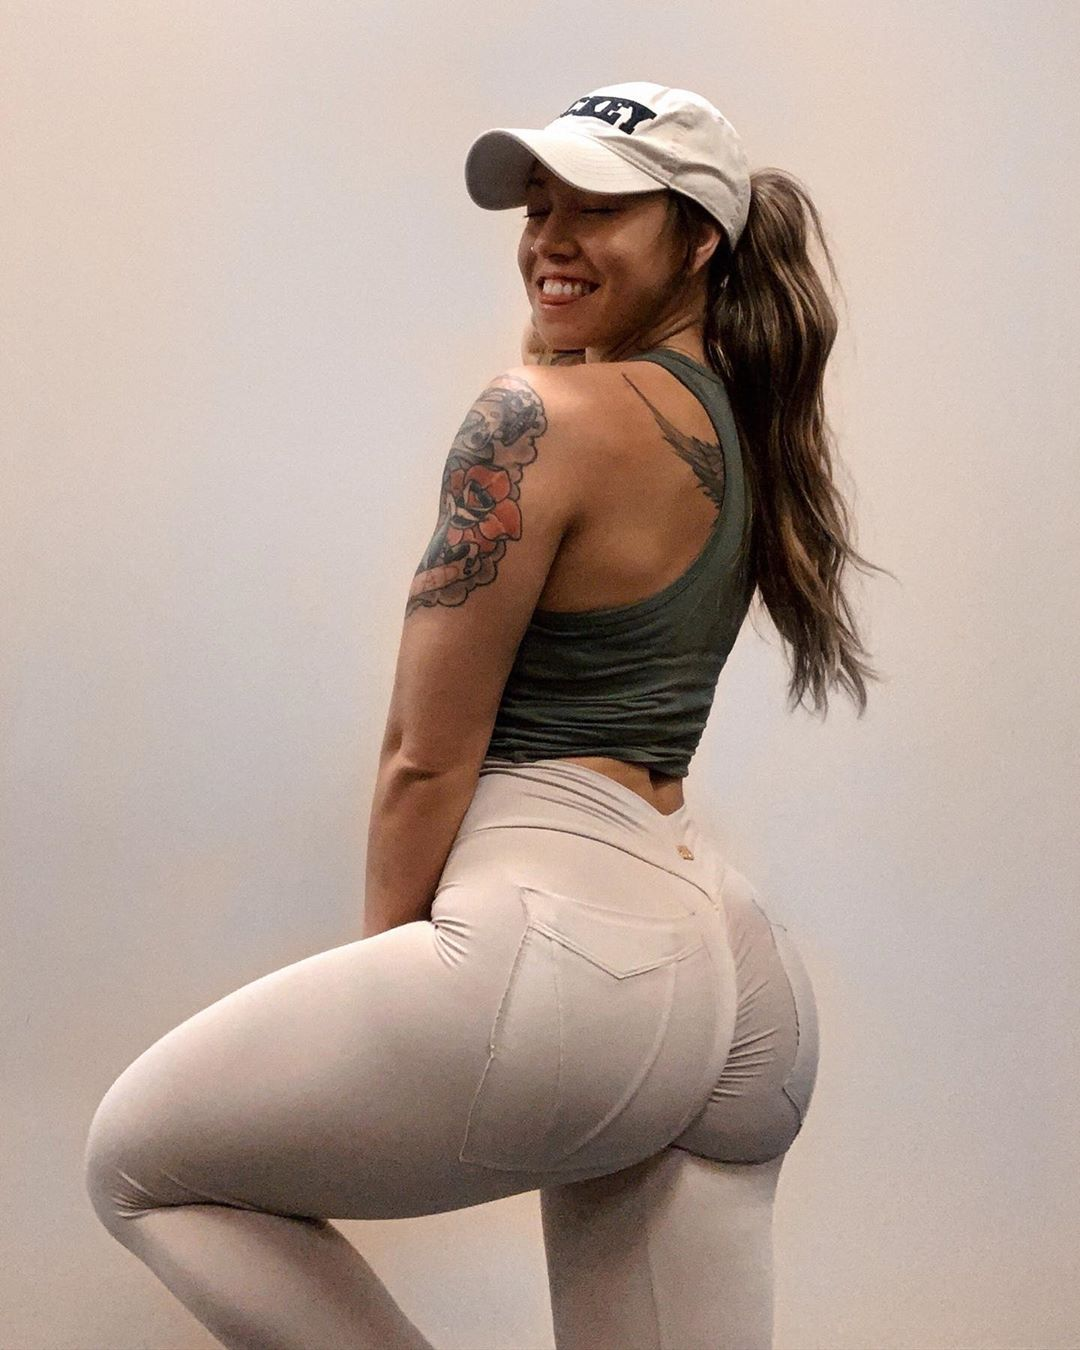 3 Exercise Workout For Strong And Powerful Glutes (Serene VanEtten)